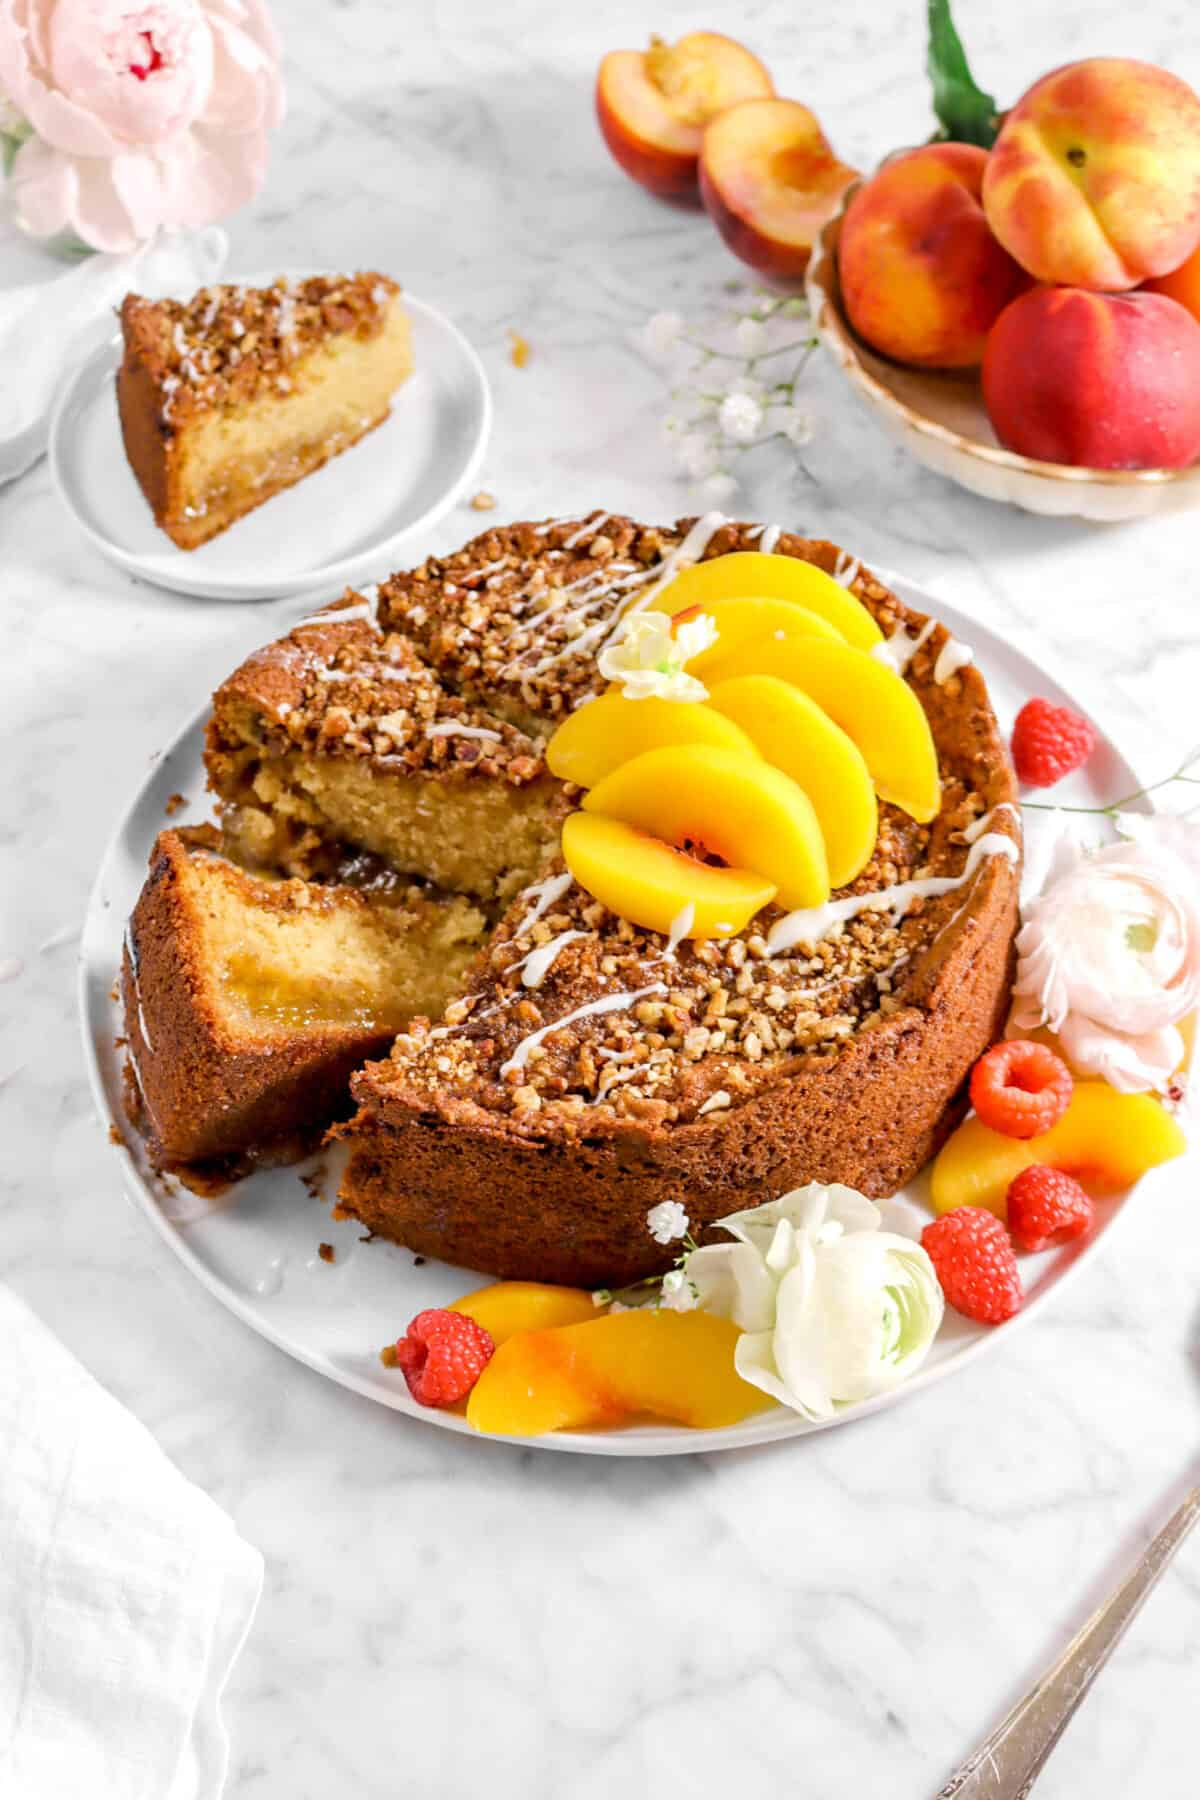 peach coffee cake with two slices laying beside, fresh peach slices on top, flowers, and a slice of cake behind